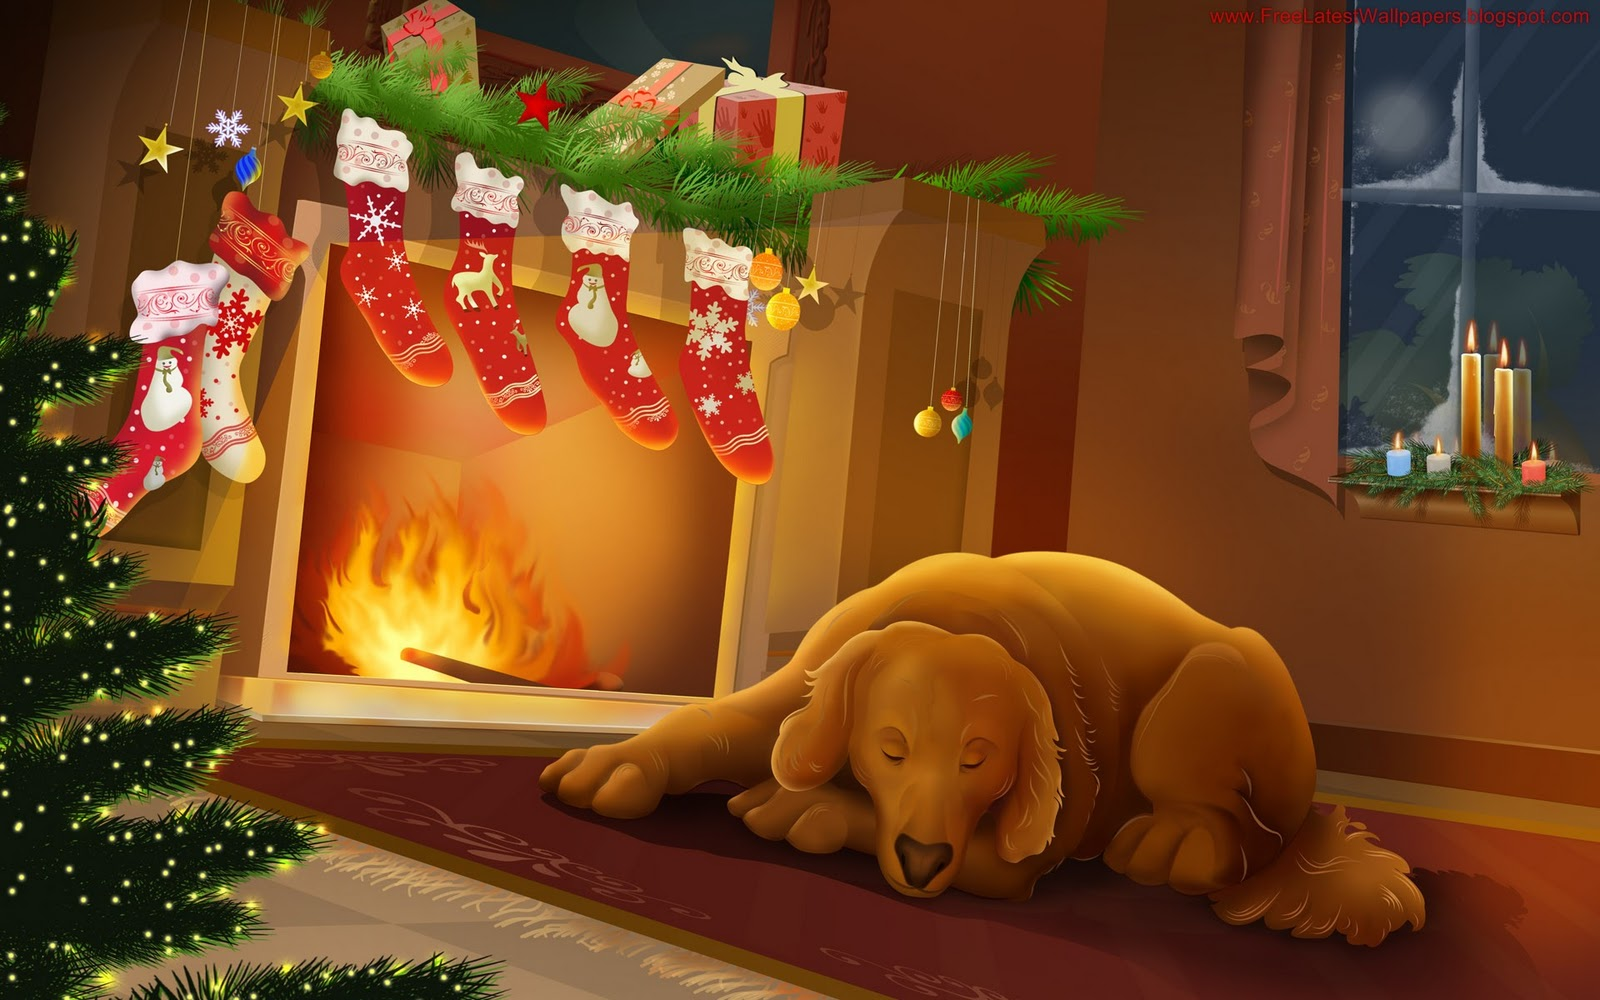 ilona wallpapers: Cozy Christmas Fireplace Wallpaper